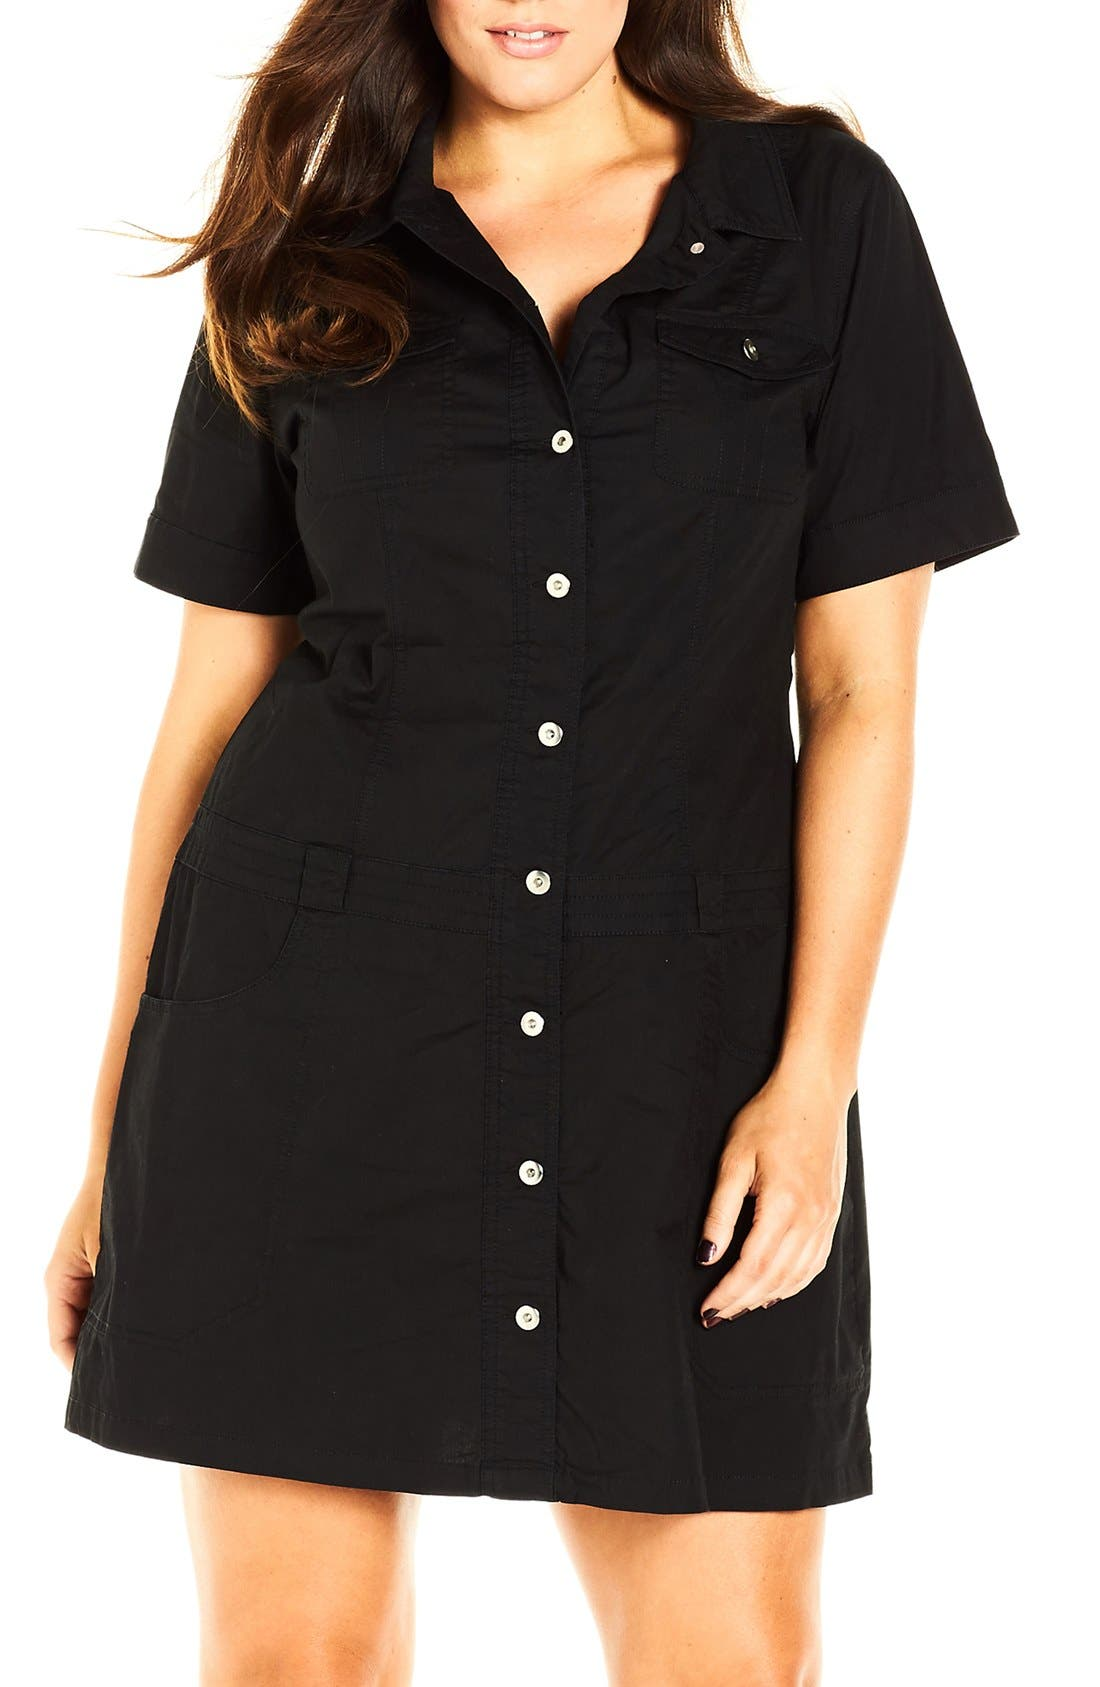 Alternate Image 1 Selected - City Chic 'Adventure' Short Sleeve Stretch Cotton Shirtdress (Plus Size)